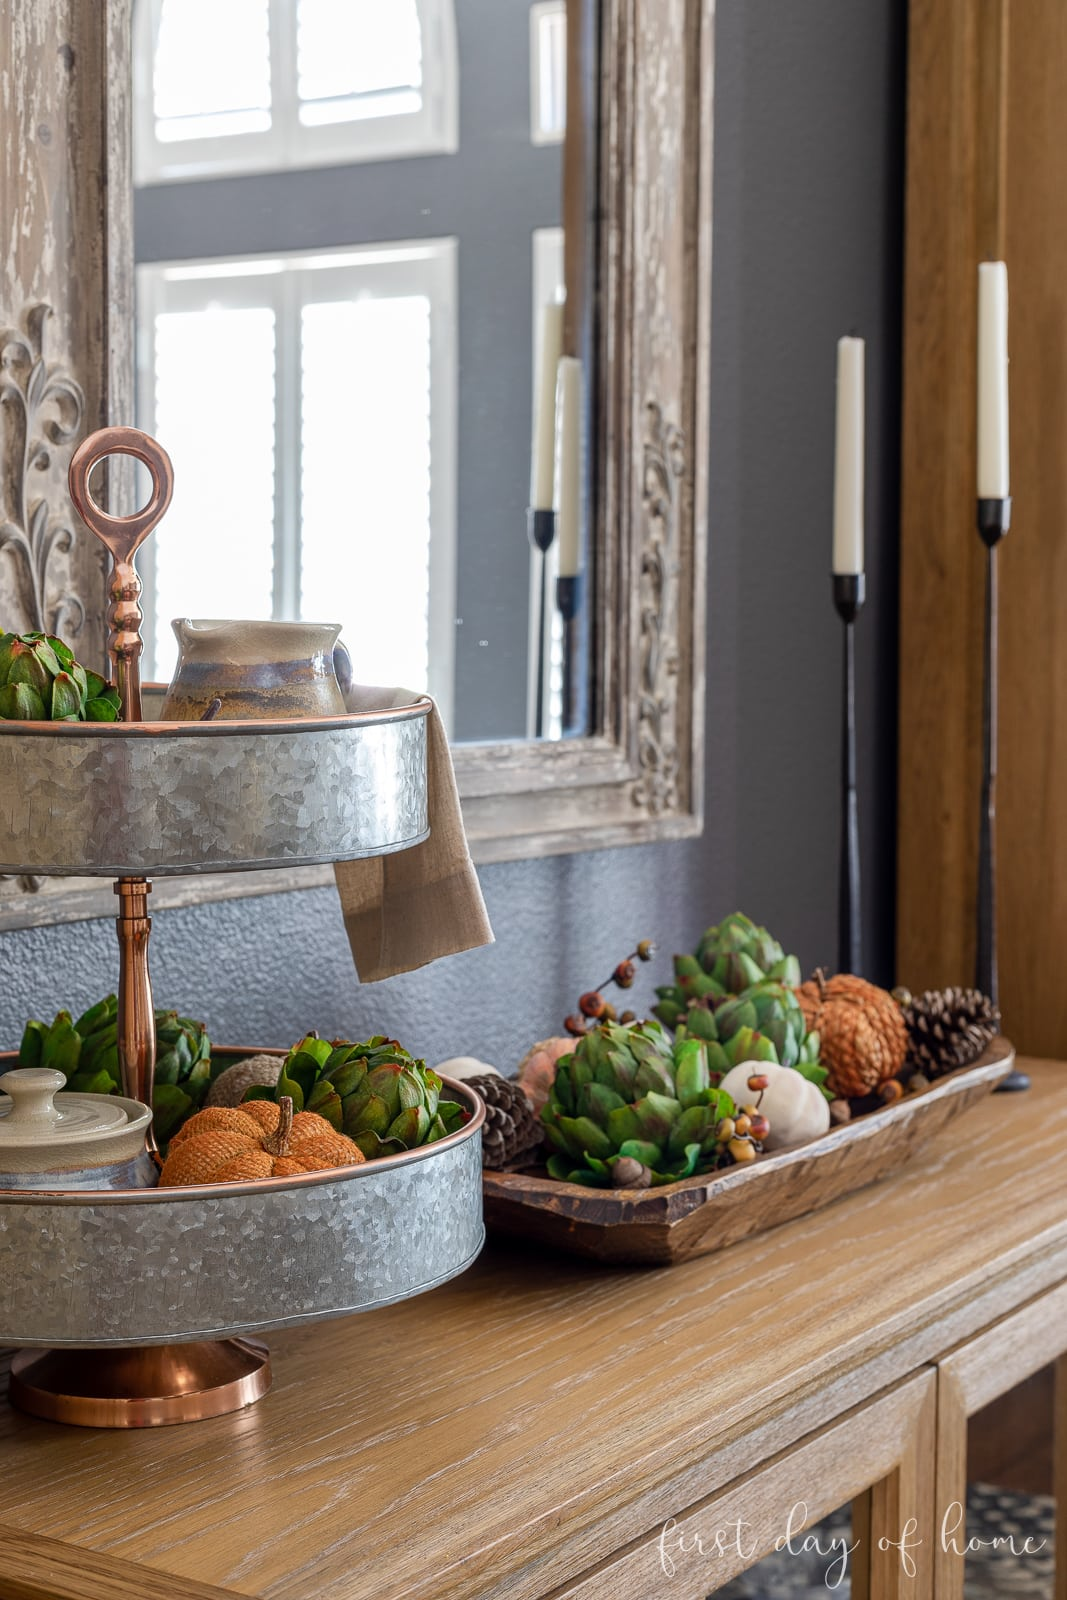 Sideboard styled with tiered galvanized metal tray, dough bowl filled with fall pumpkins and accents, and tall taper candleholders